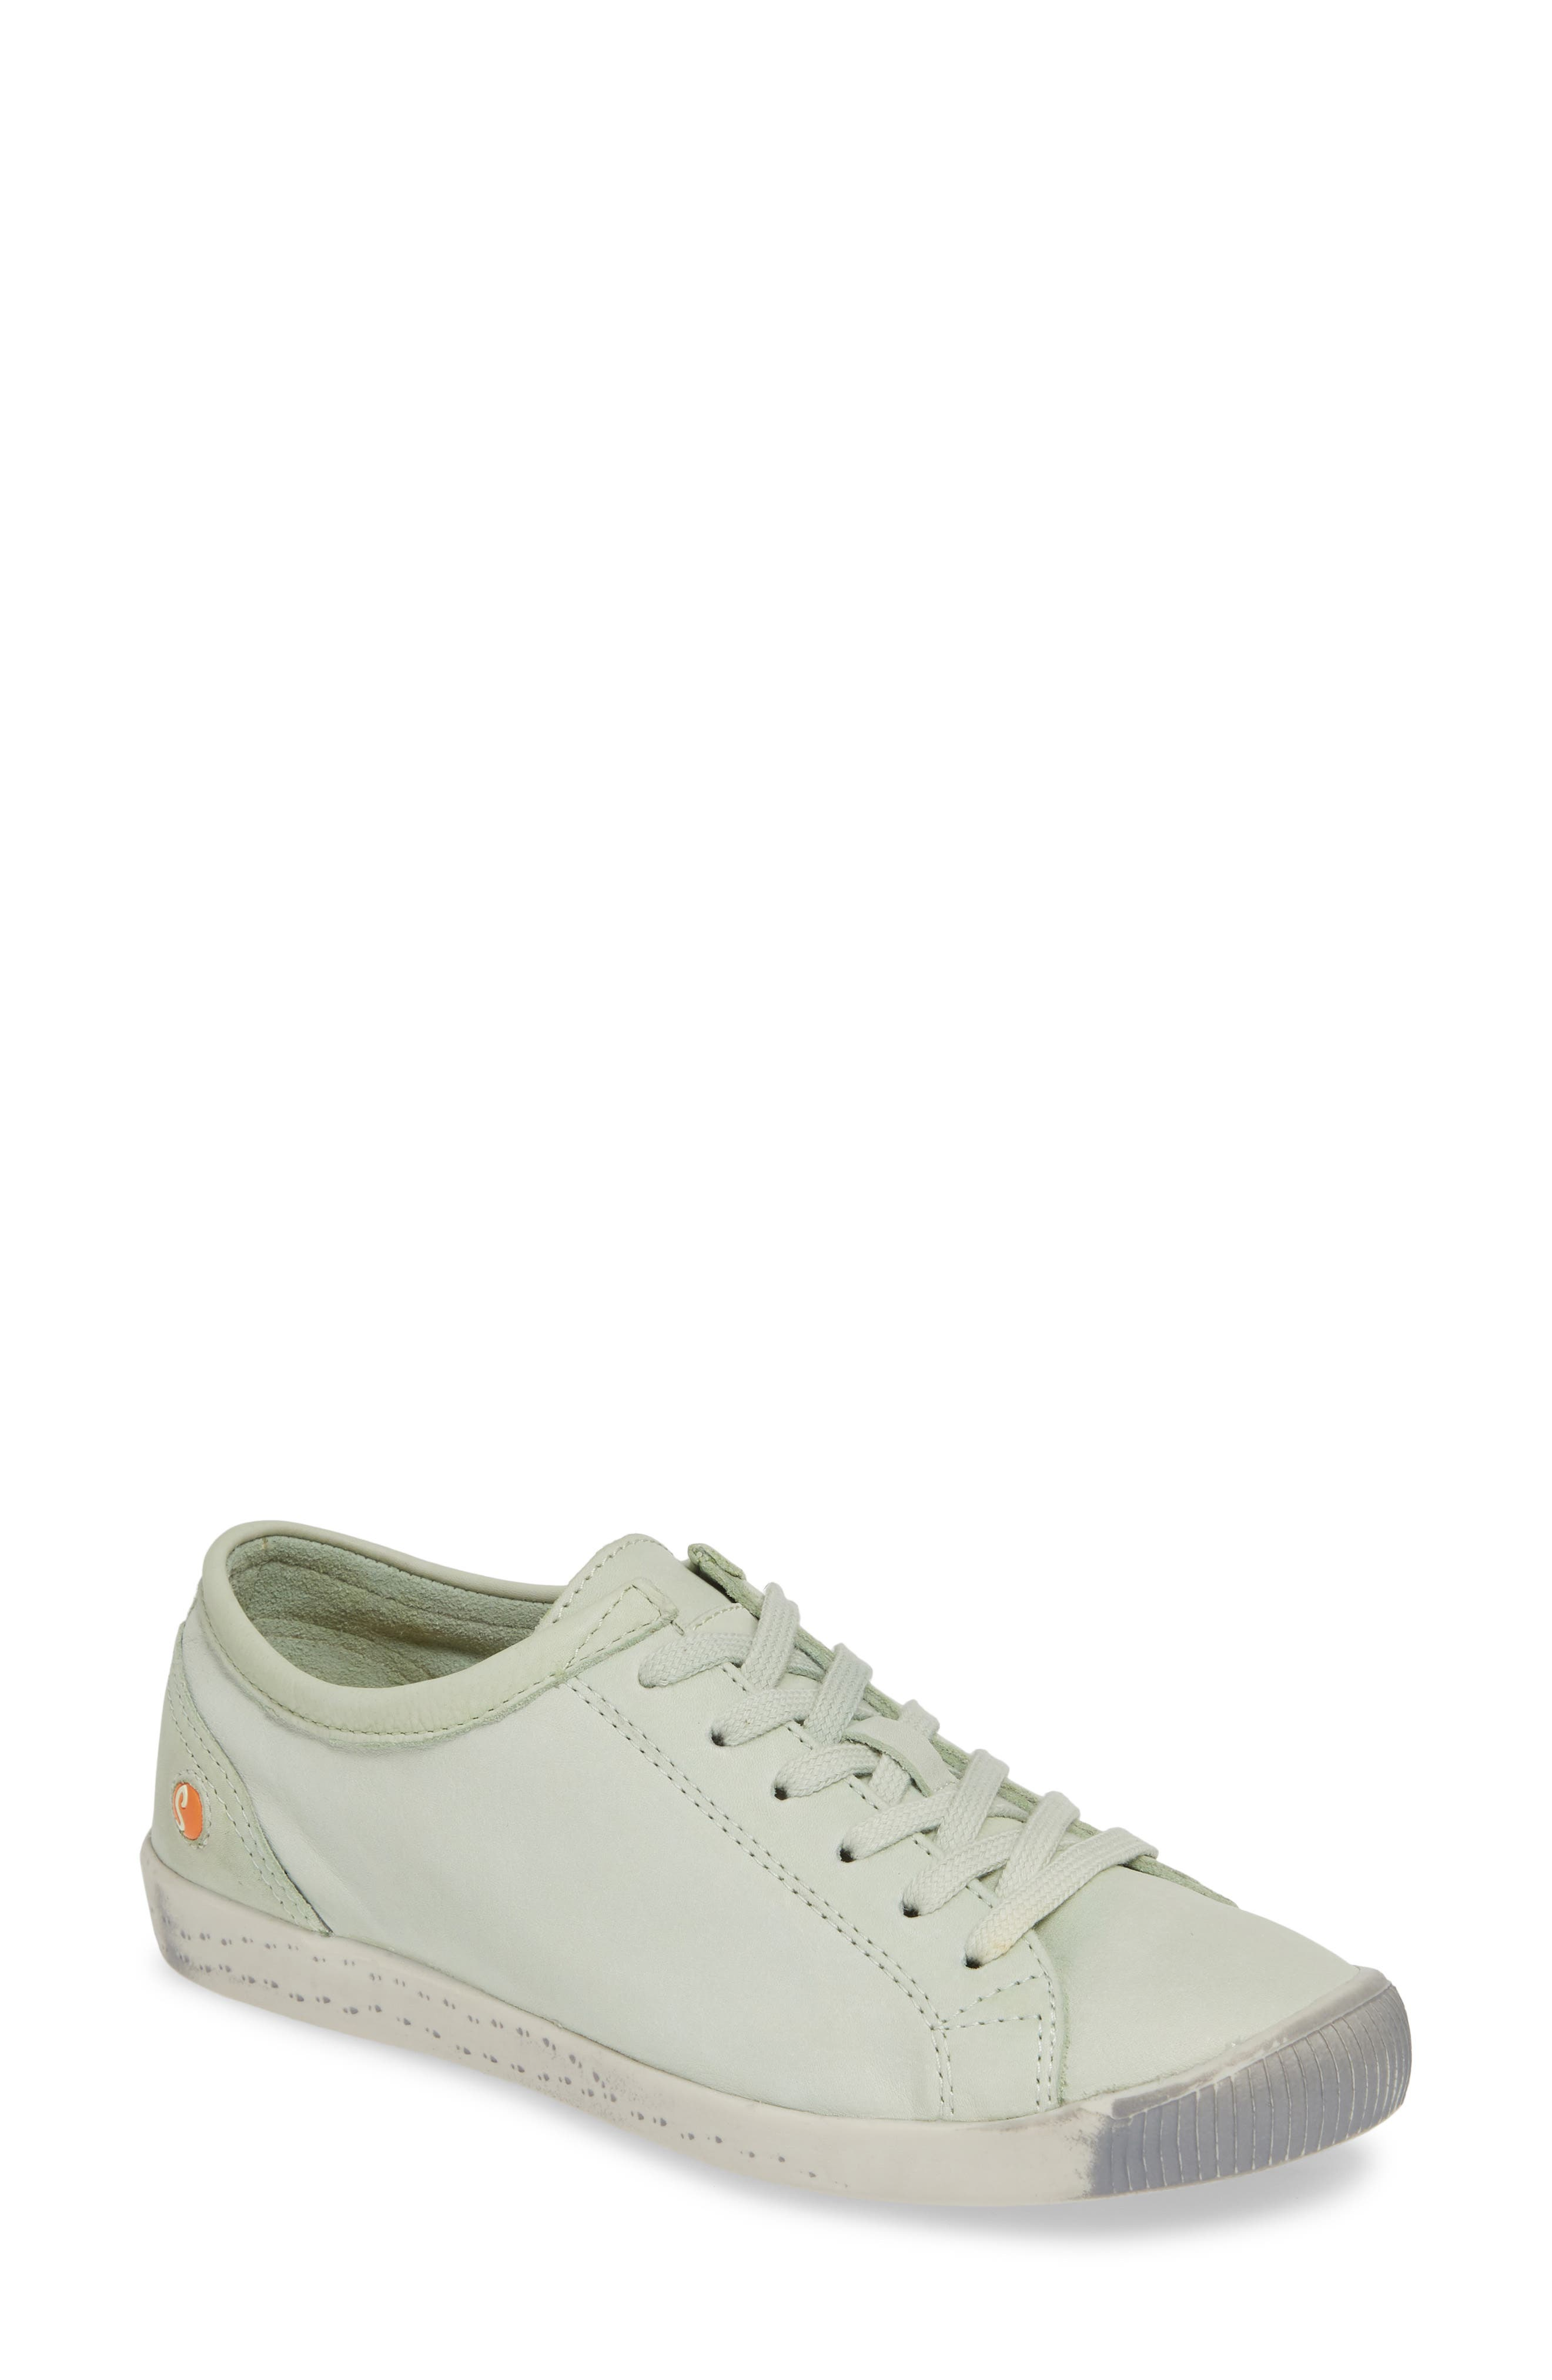 Softinos By Fly London Isla Distressed Sneaker, Green